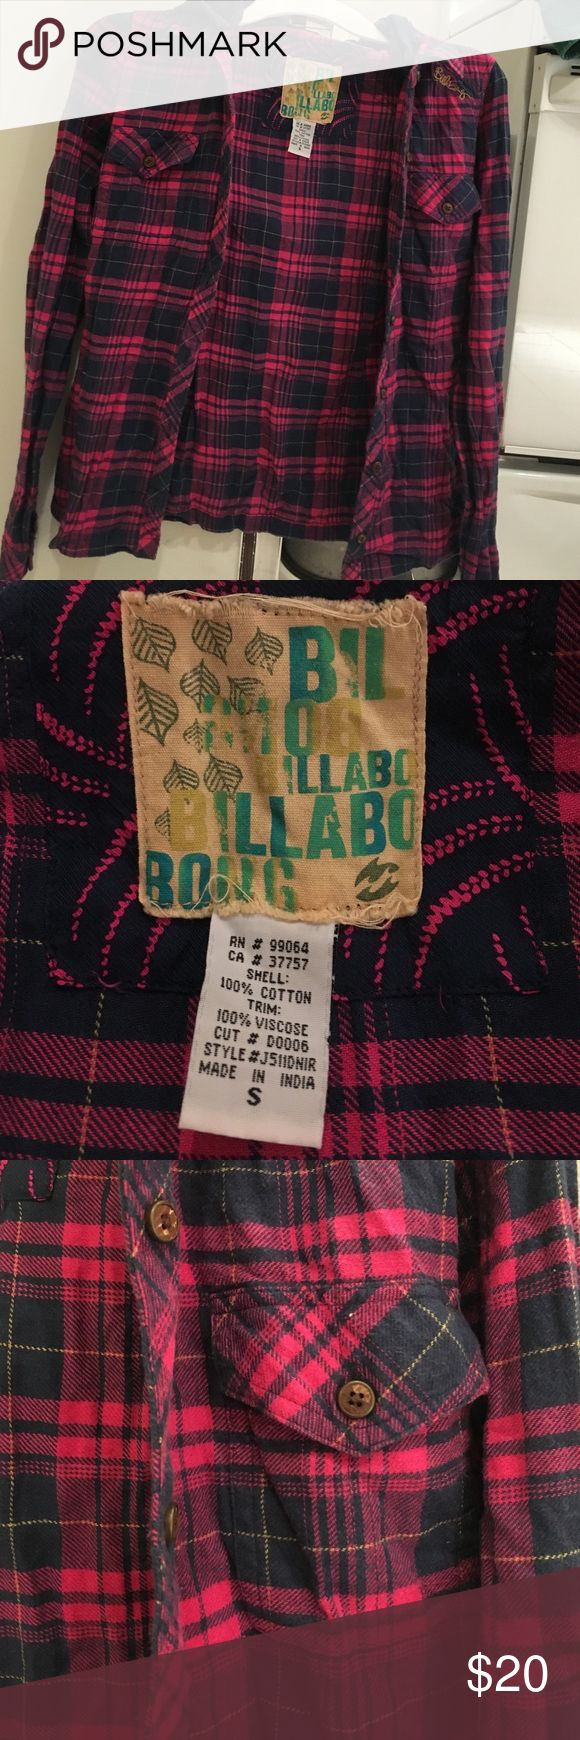 Pink and navy blue plaid shirt Pink and navy blue plaid shirt with removable hoodie! In very good condition. Long sleeves. Billabong Tops Button Down Shirts